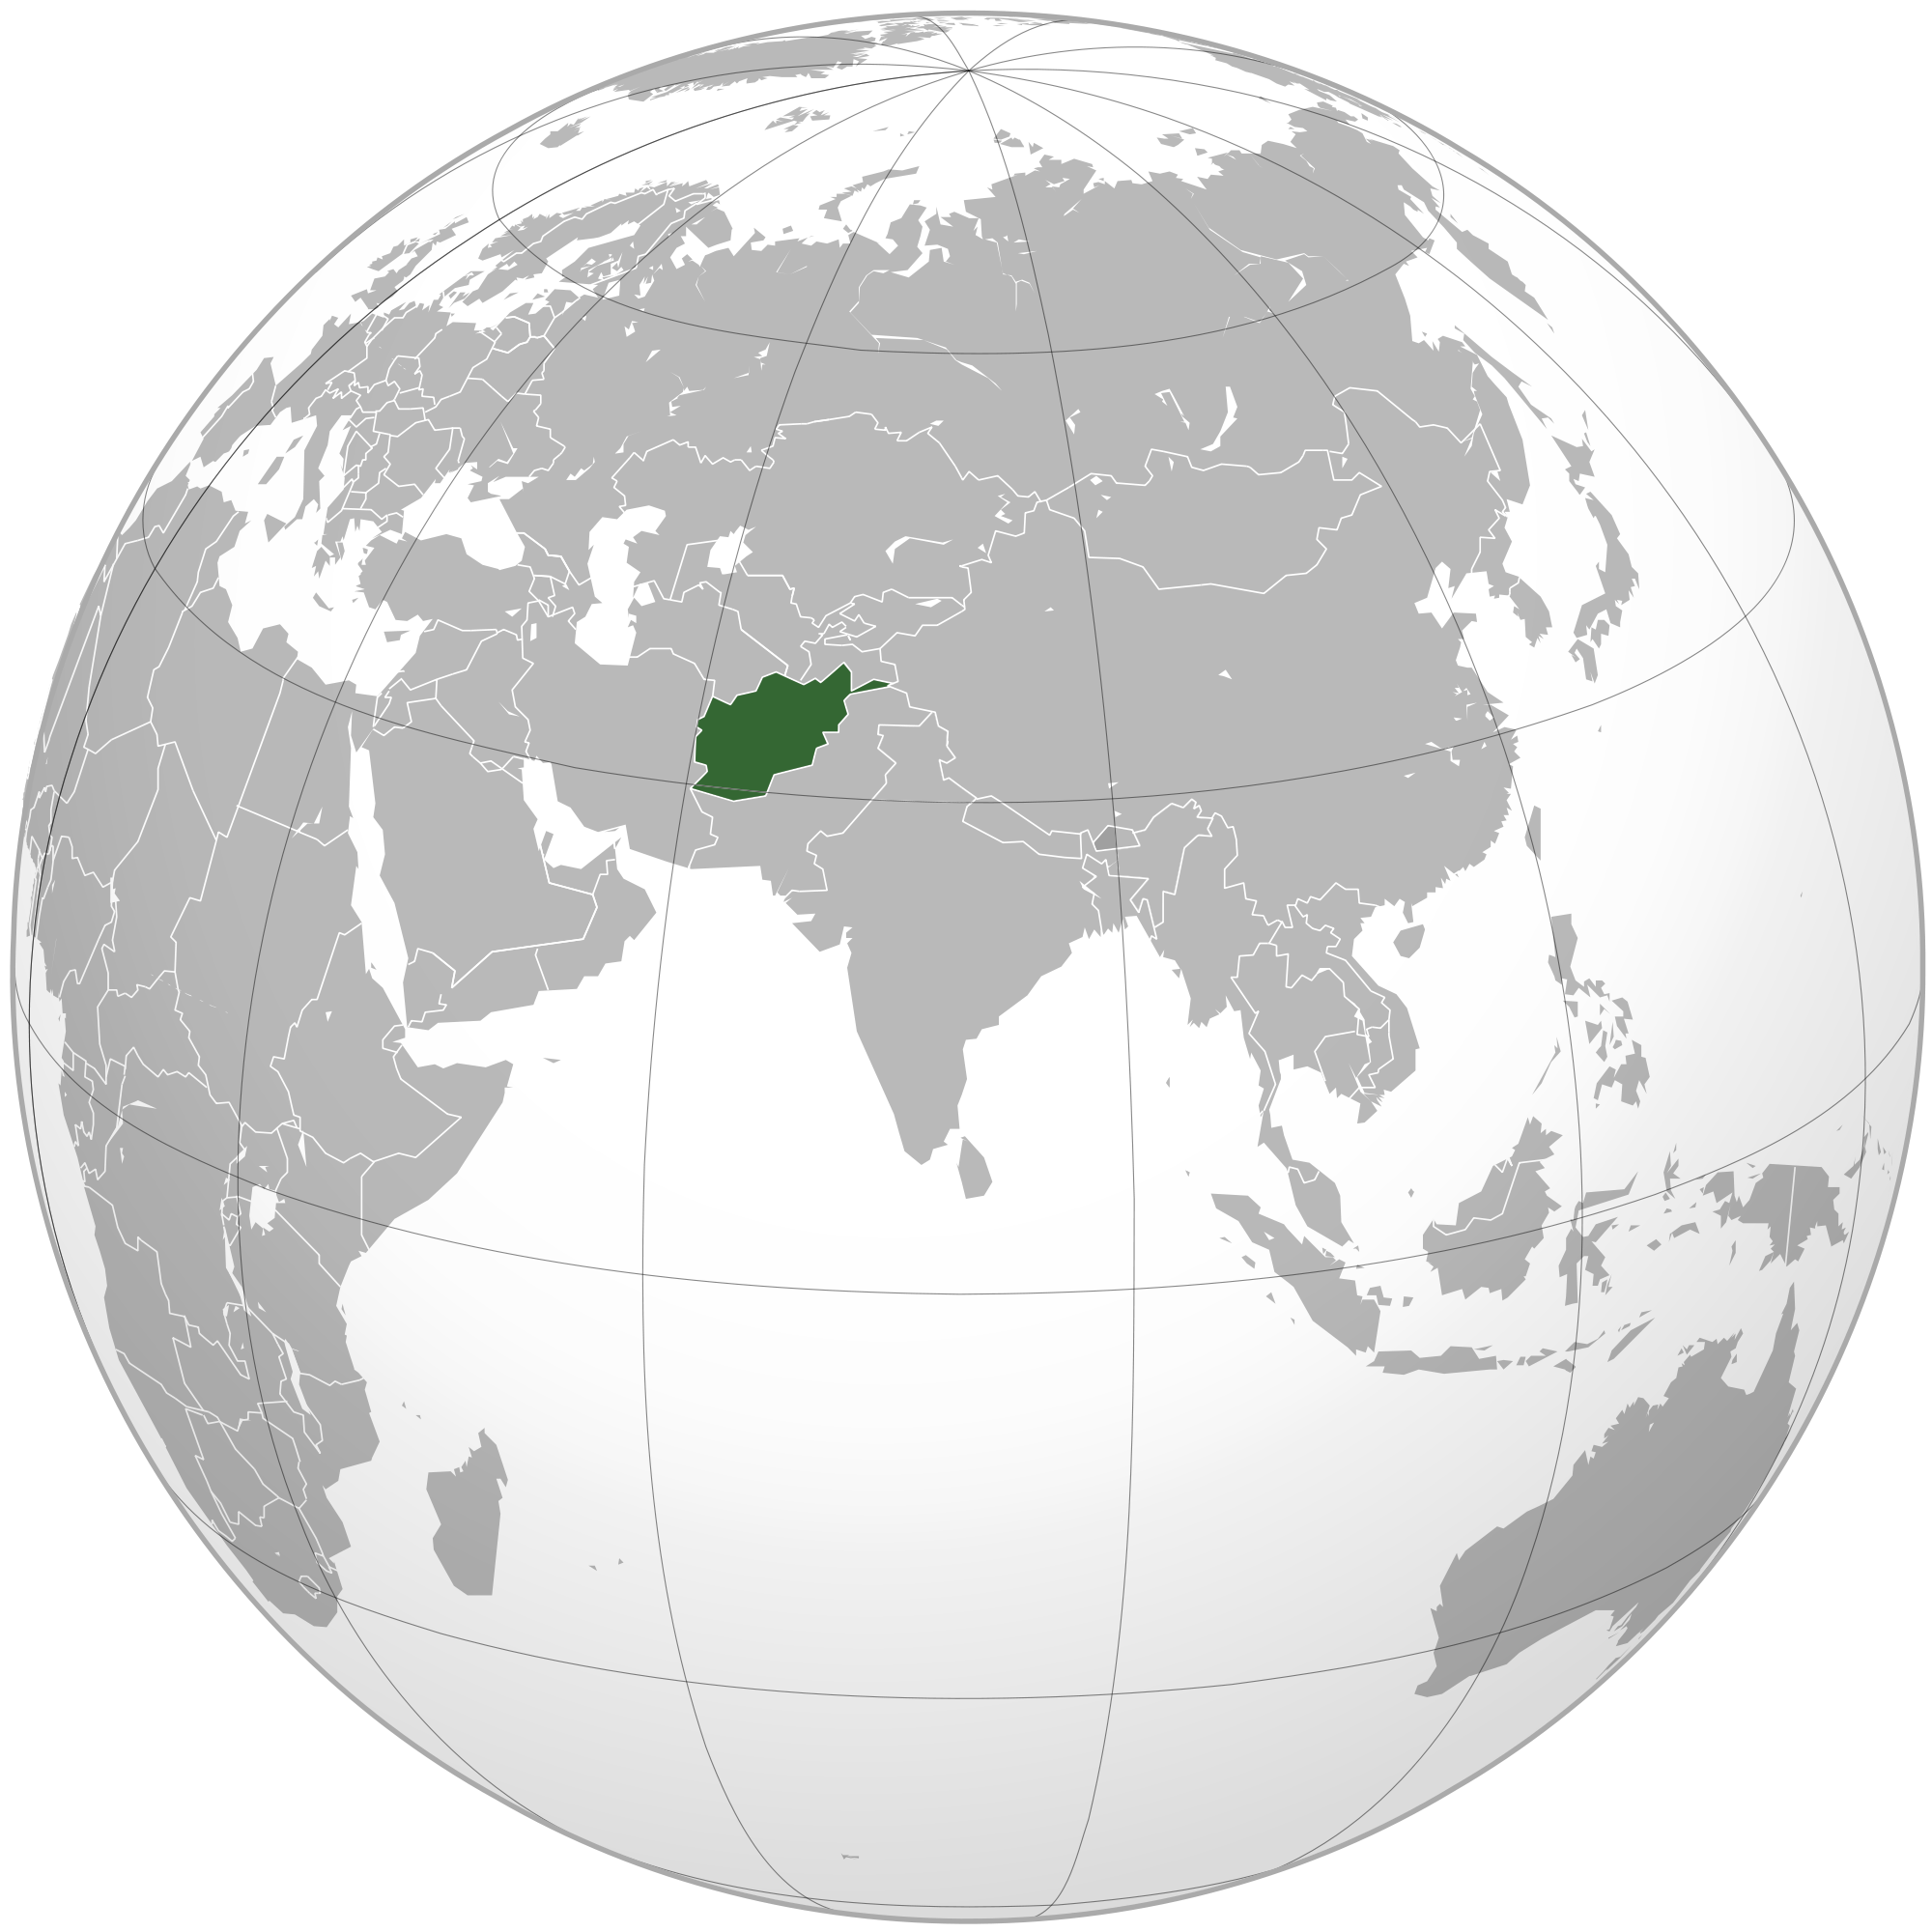 Location of the Afghanistan in the World Map